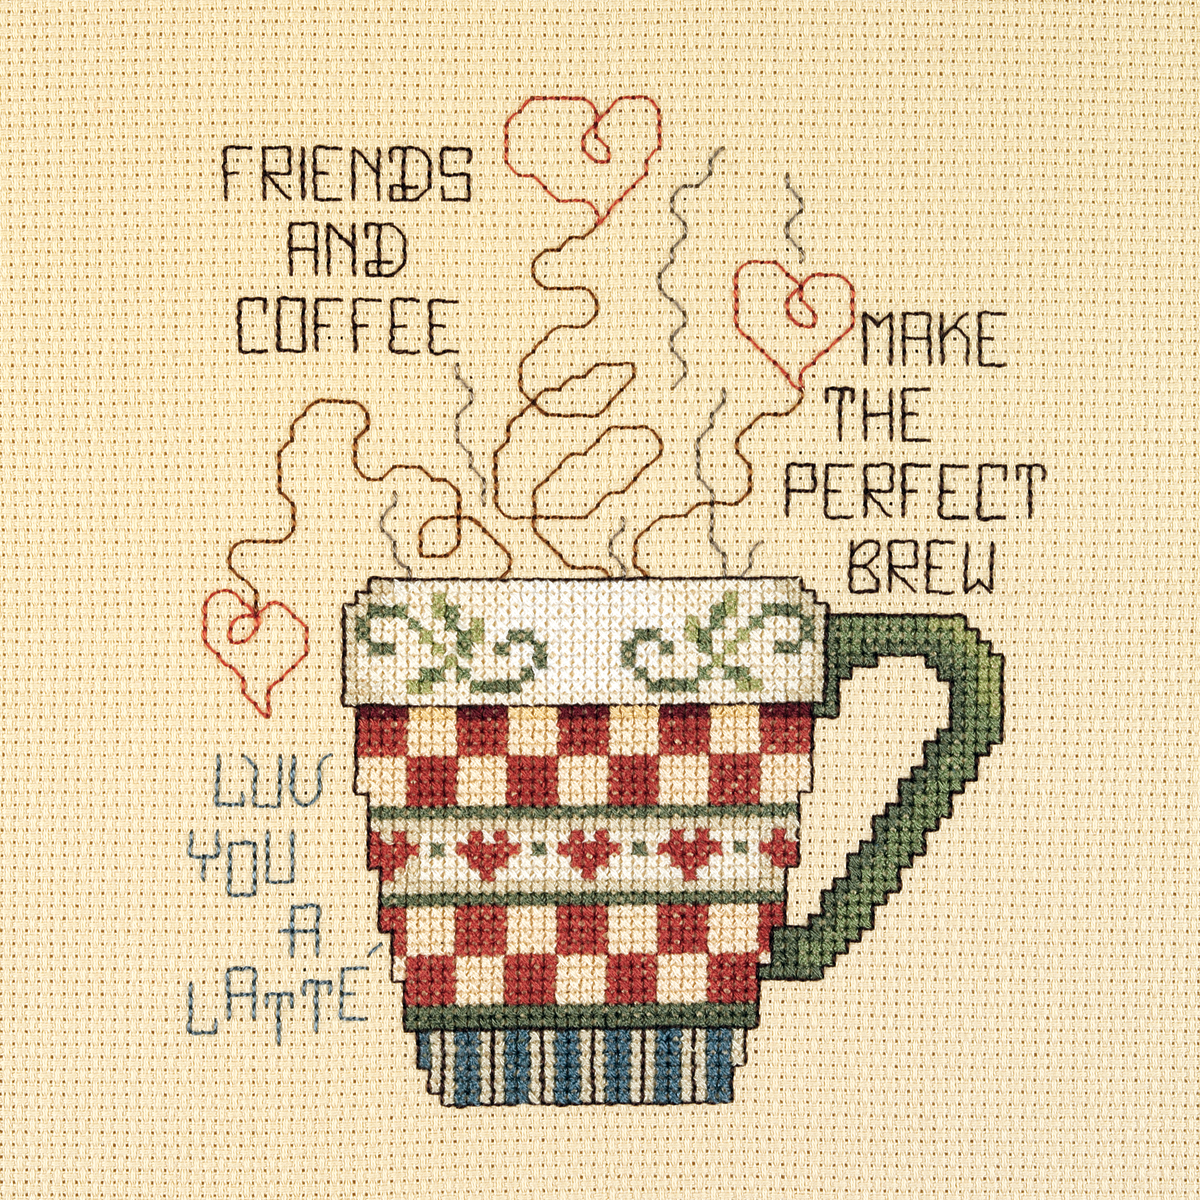 "Friends And Coffee Mini Counted Cross Stitch Kit-5""X6"" 14 Count"